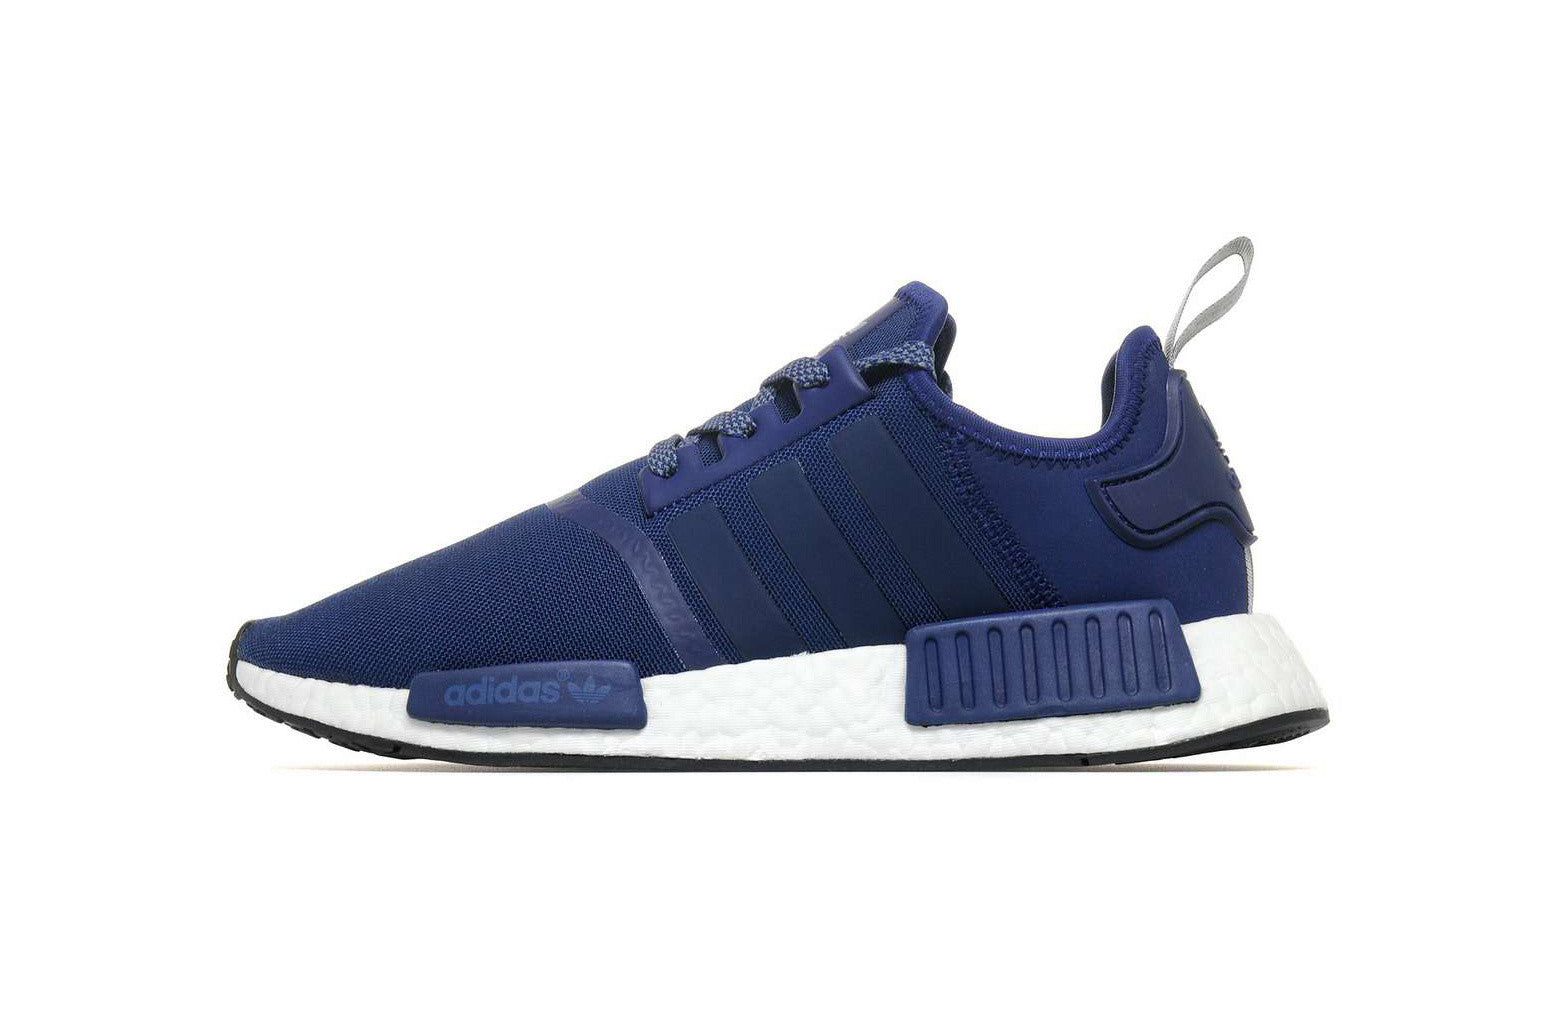 How To Lace Your Sneakers / Swap Your Shoe Laces : ADIDAS NMD R1 Bright Blue